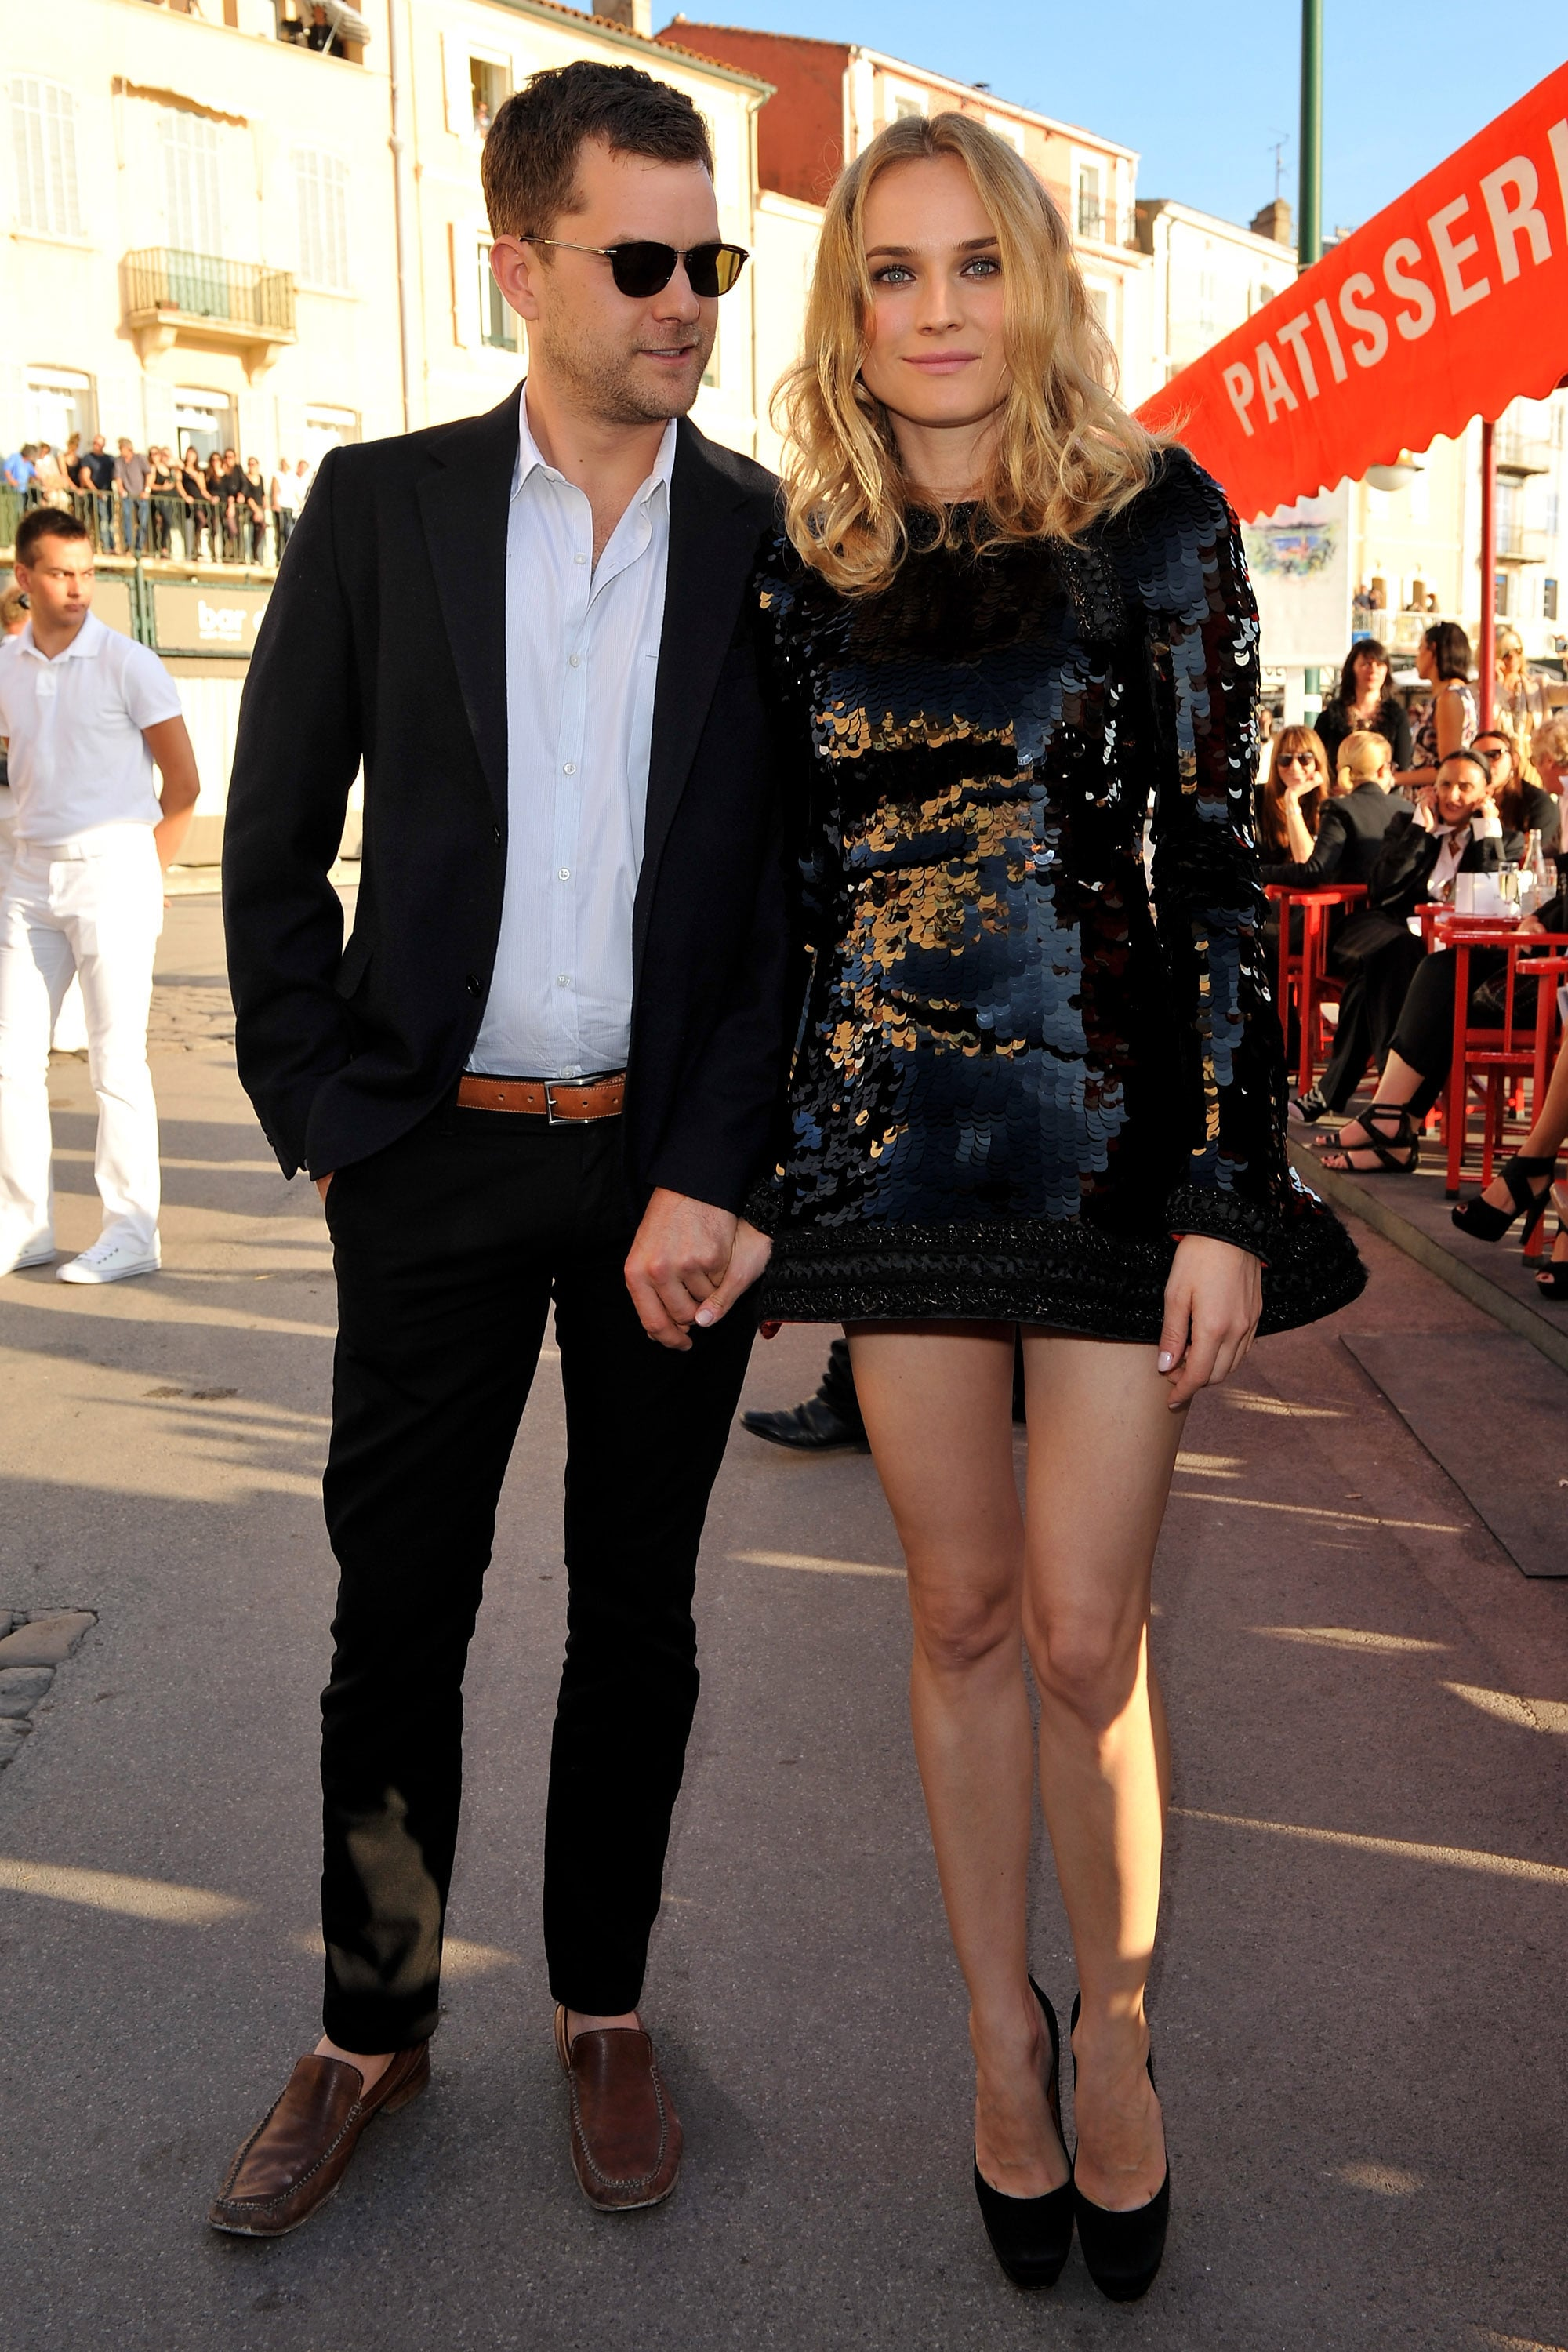 She showed off her legs in a hot sequined mini for the Chanel Cruise Collection presentation in 2010.